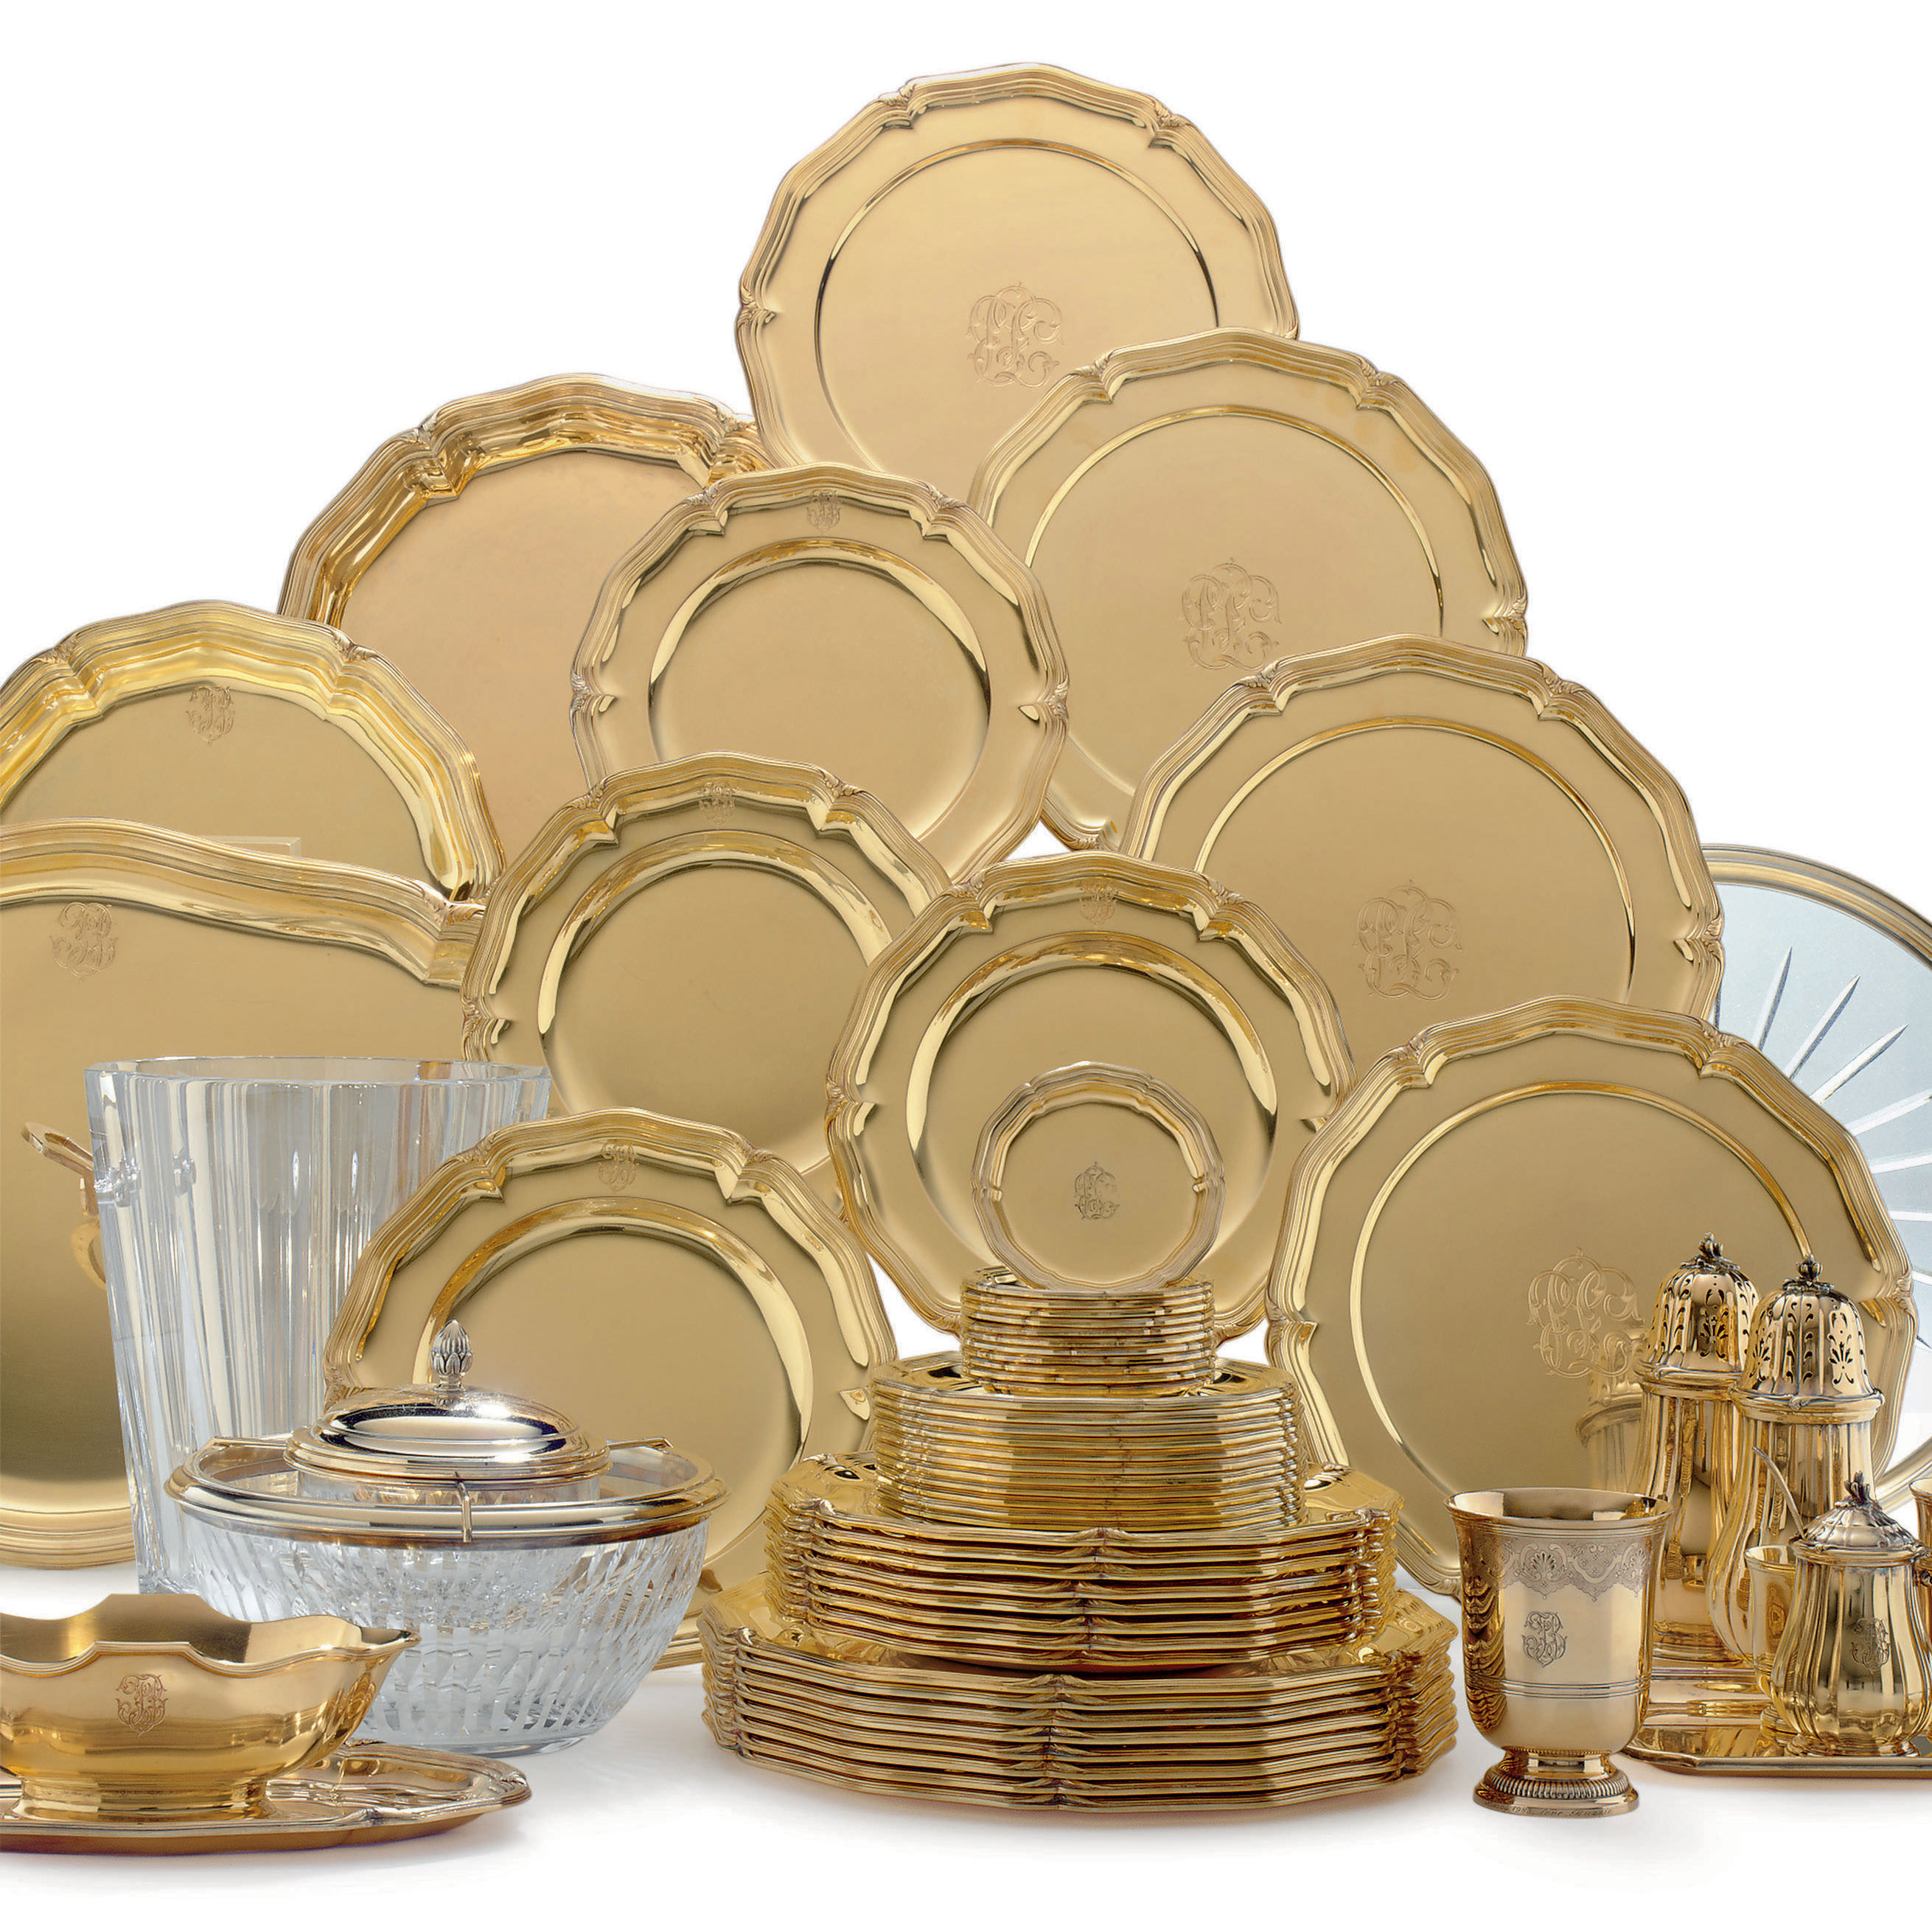 A FRENCH SILVER-GILT DINNER SERVICE